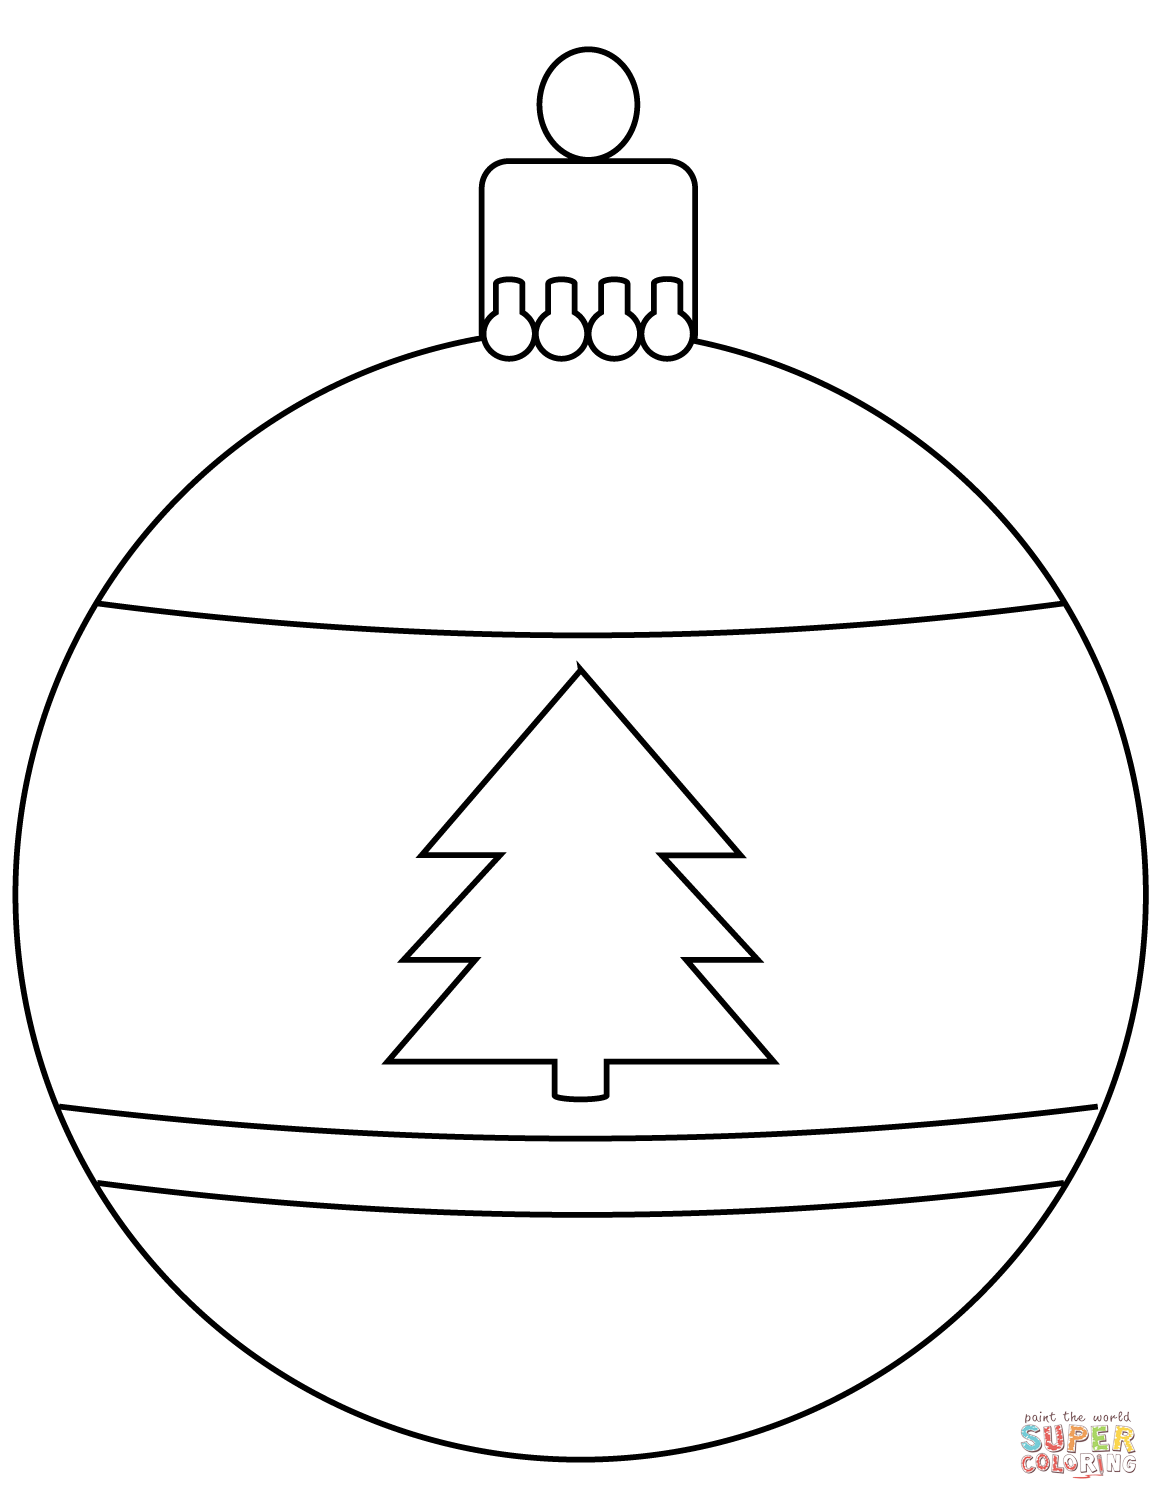 Christmas Ornaments Coloring Pages With Bauble Ornament Page Free Printable